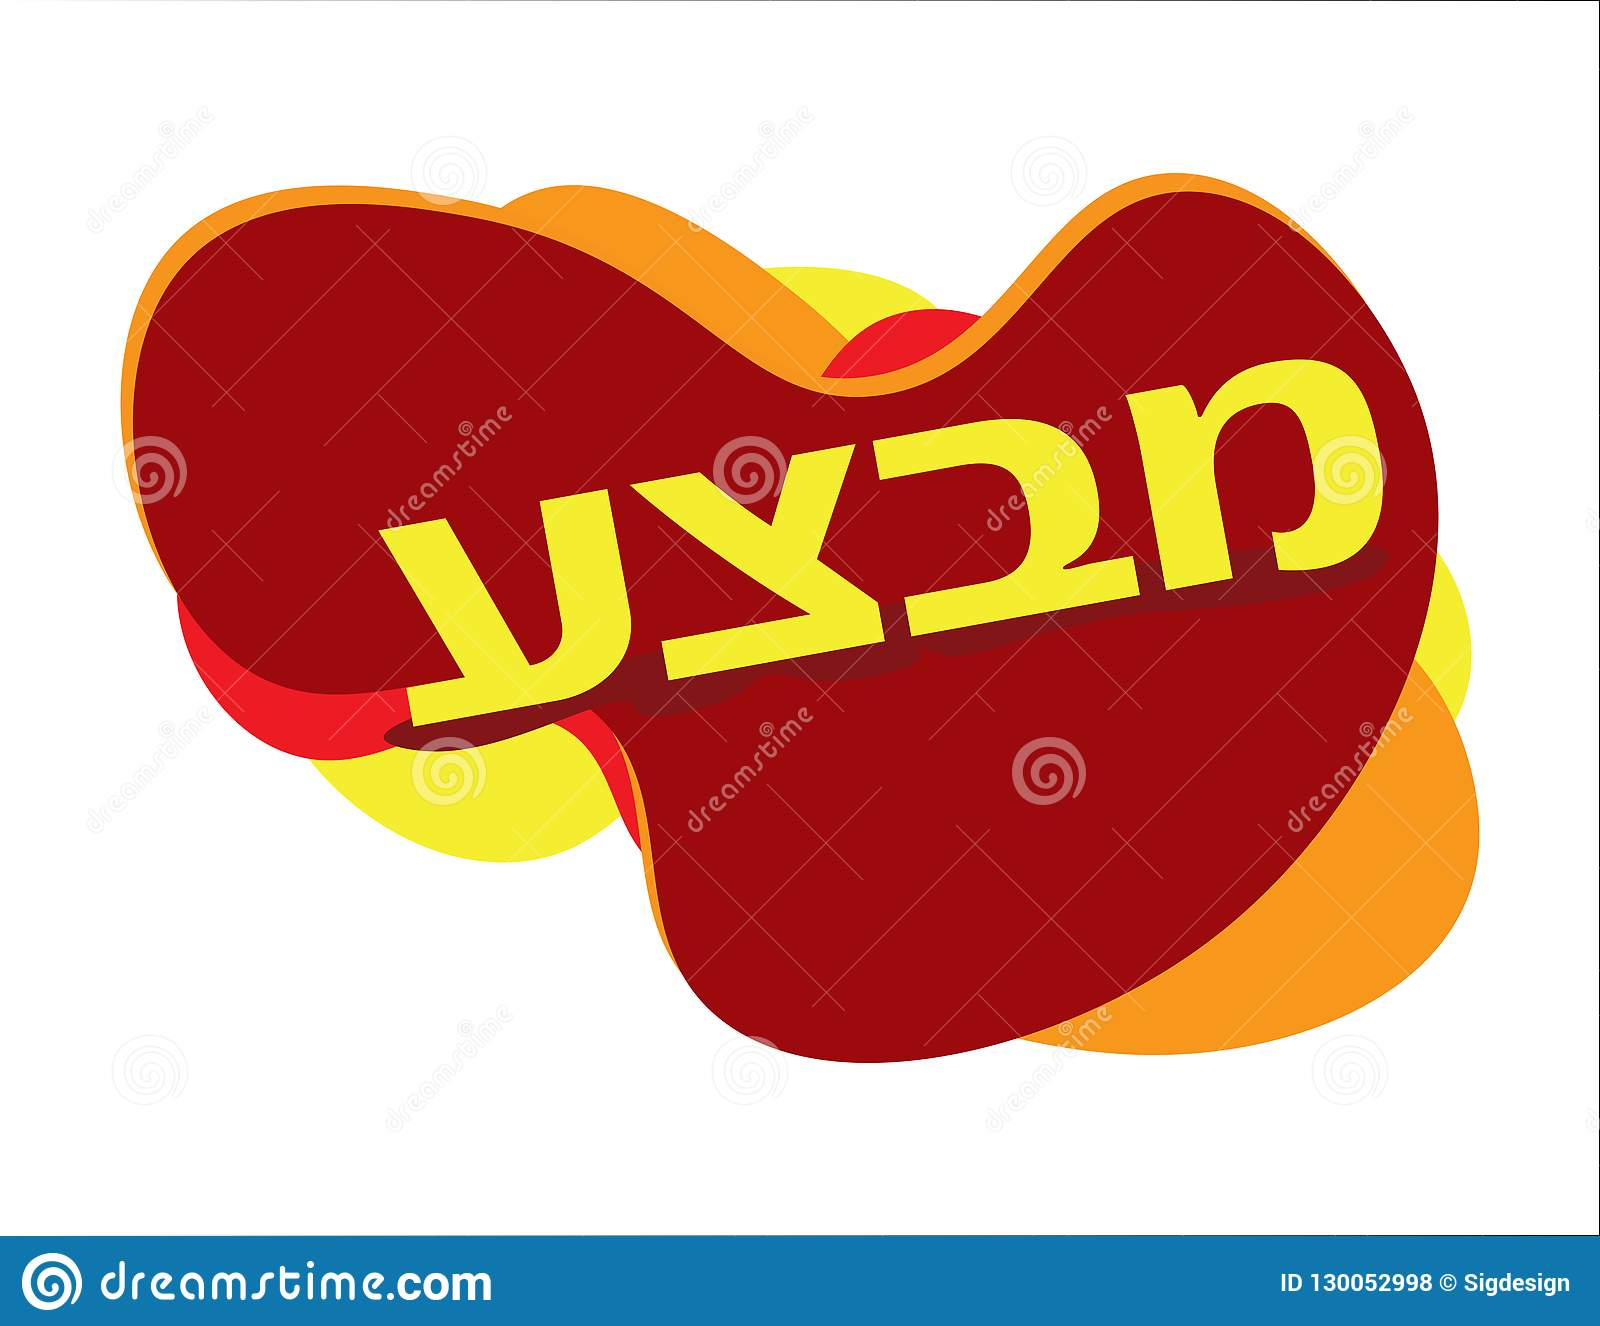 Abstract sale icon. Hebrew word for sale, abstract shapes and white background